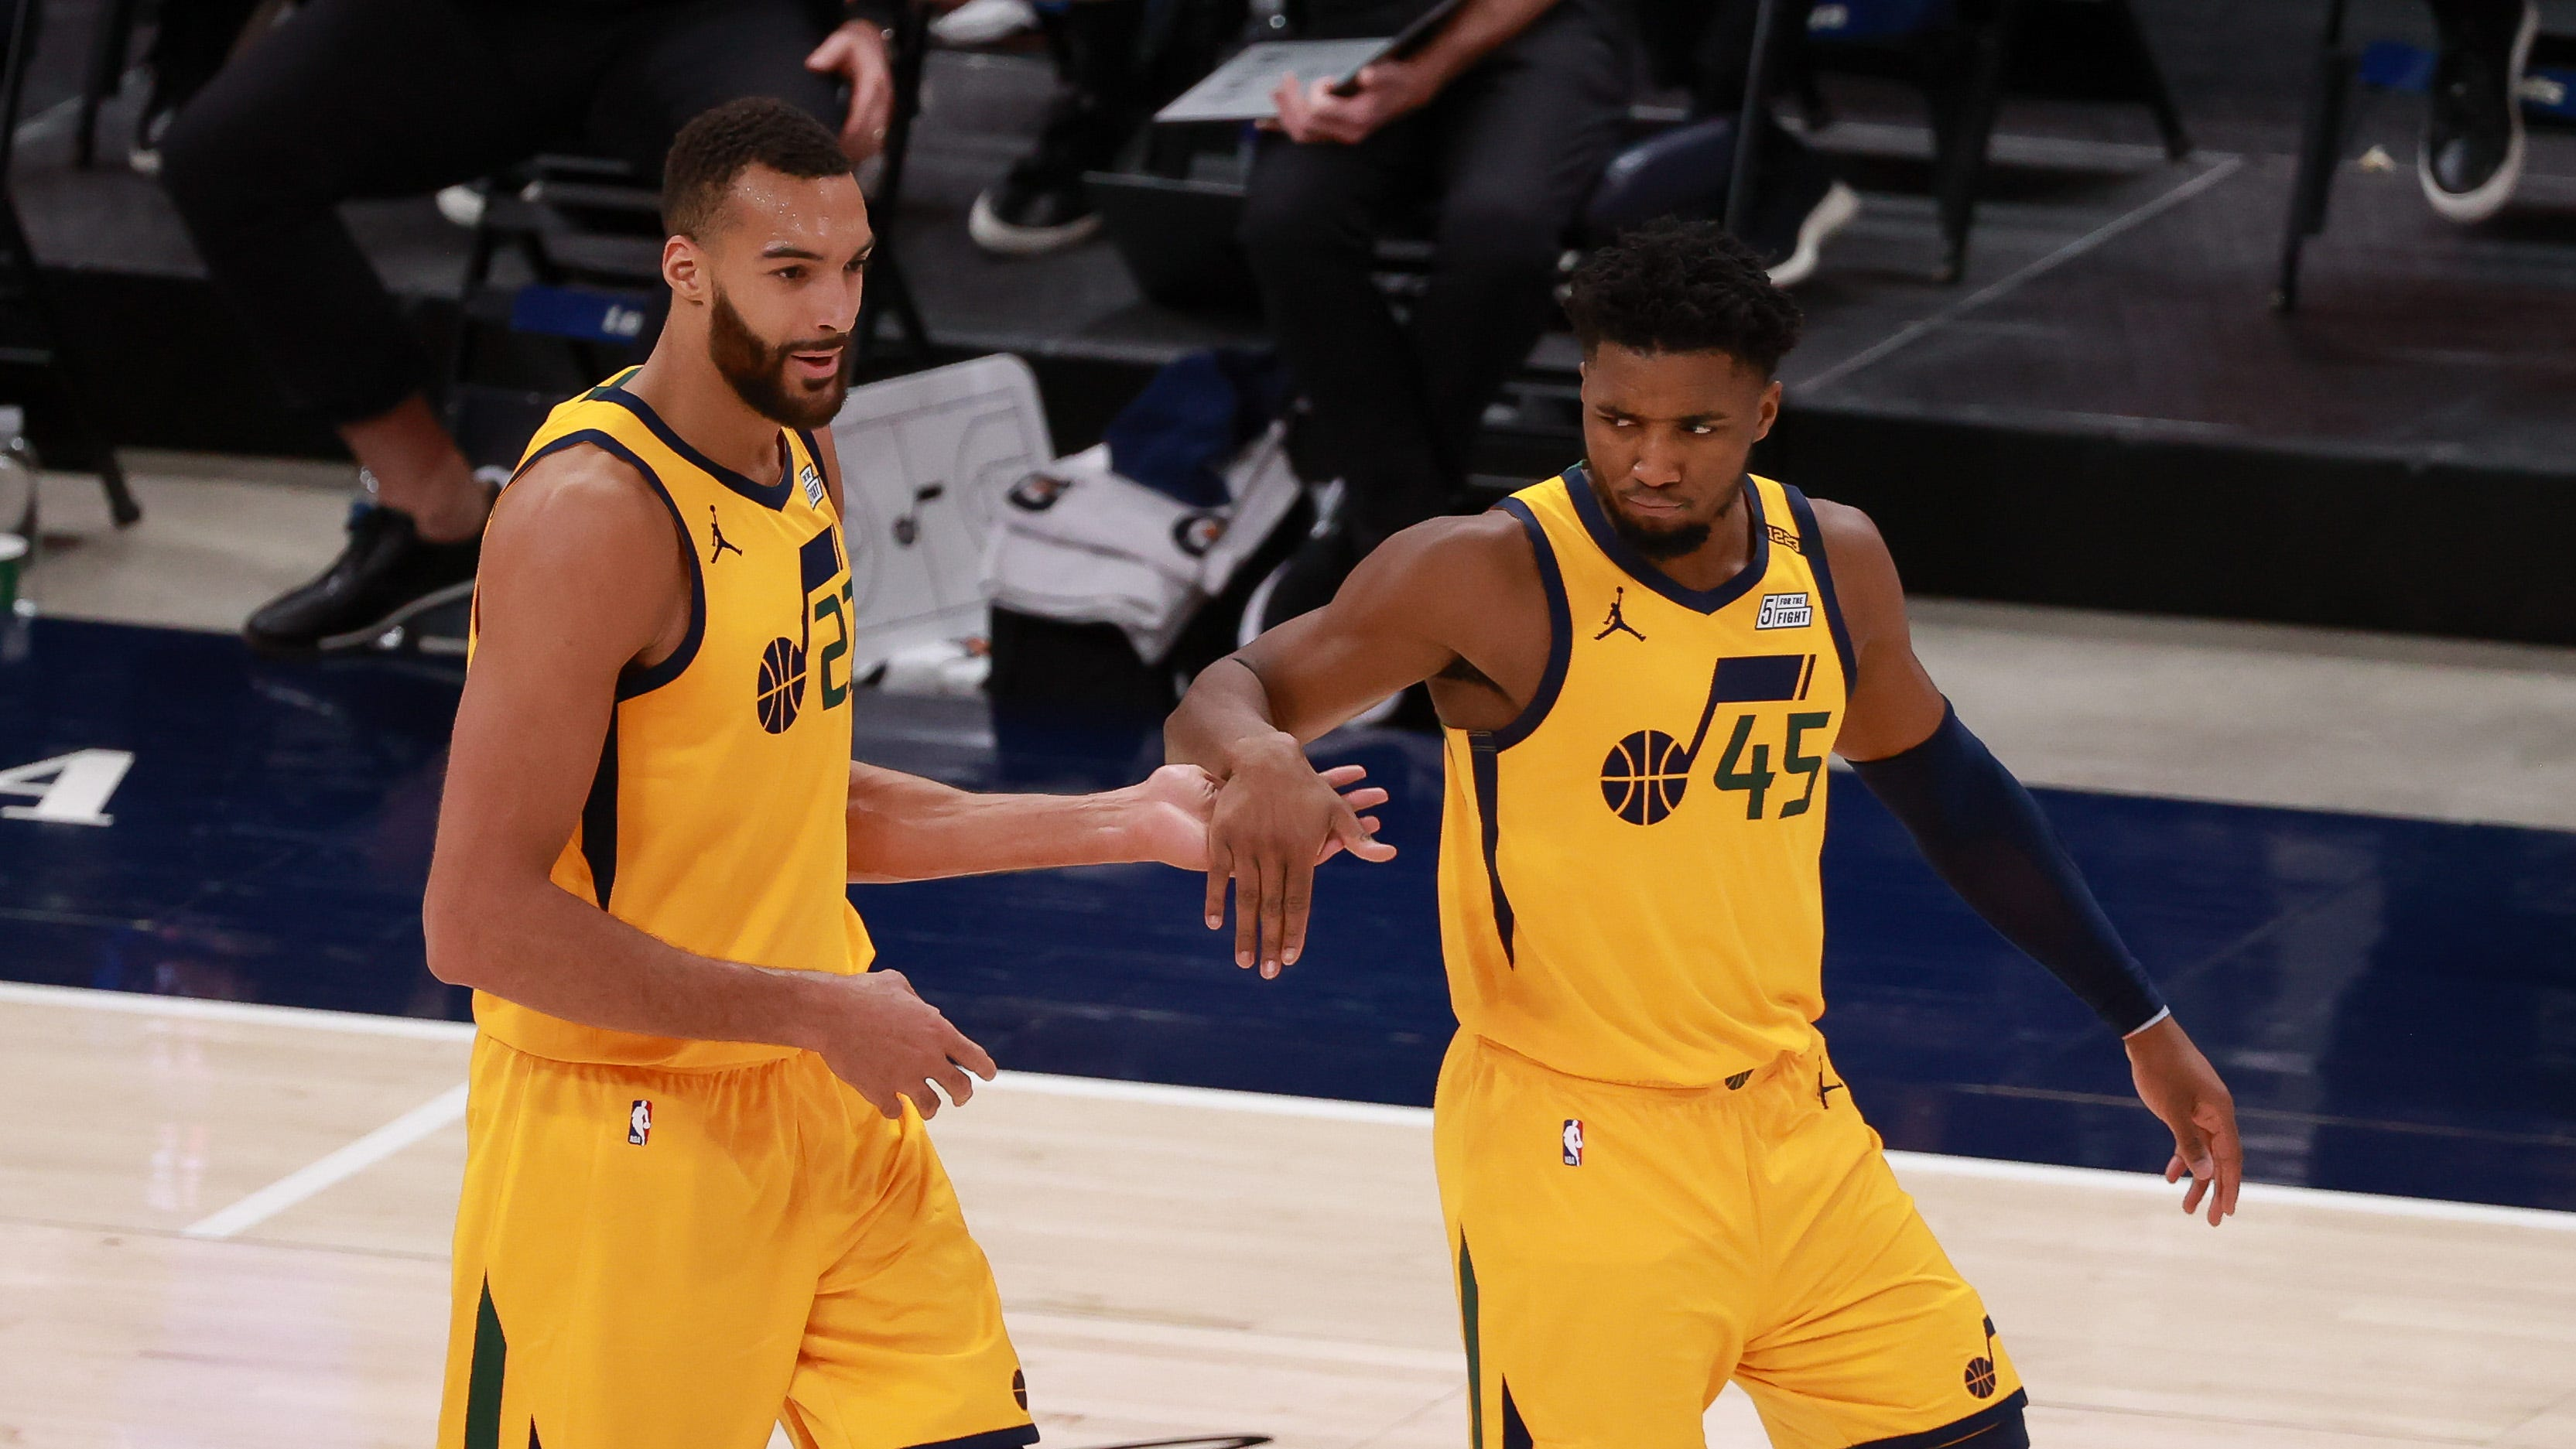 Rudy Gobert (left) and Donovan Mitchell have led the Jazz to the top of the Western Conference standings after Gobert's positive COVID-19 test last year threatened to cause friction between the two All-Stars.